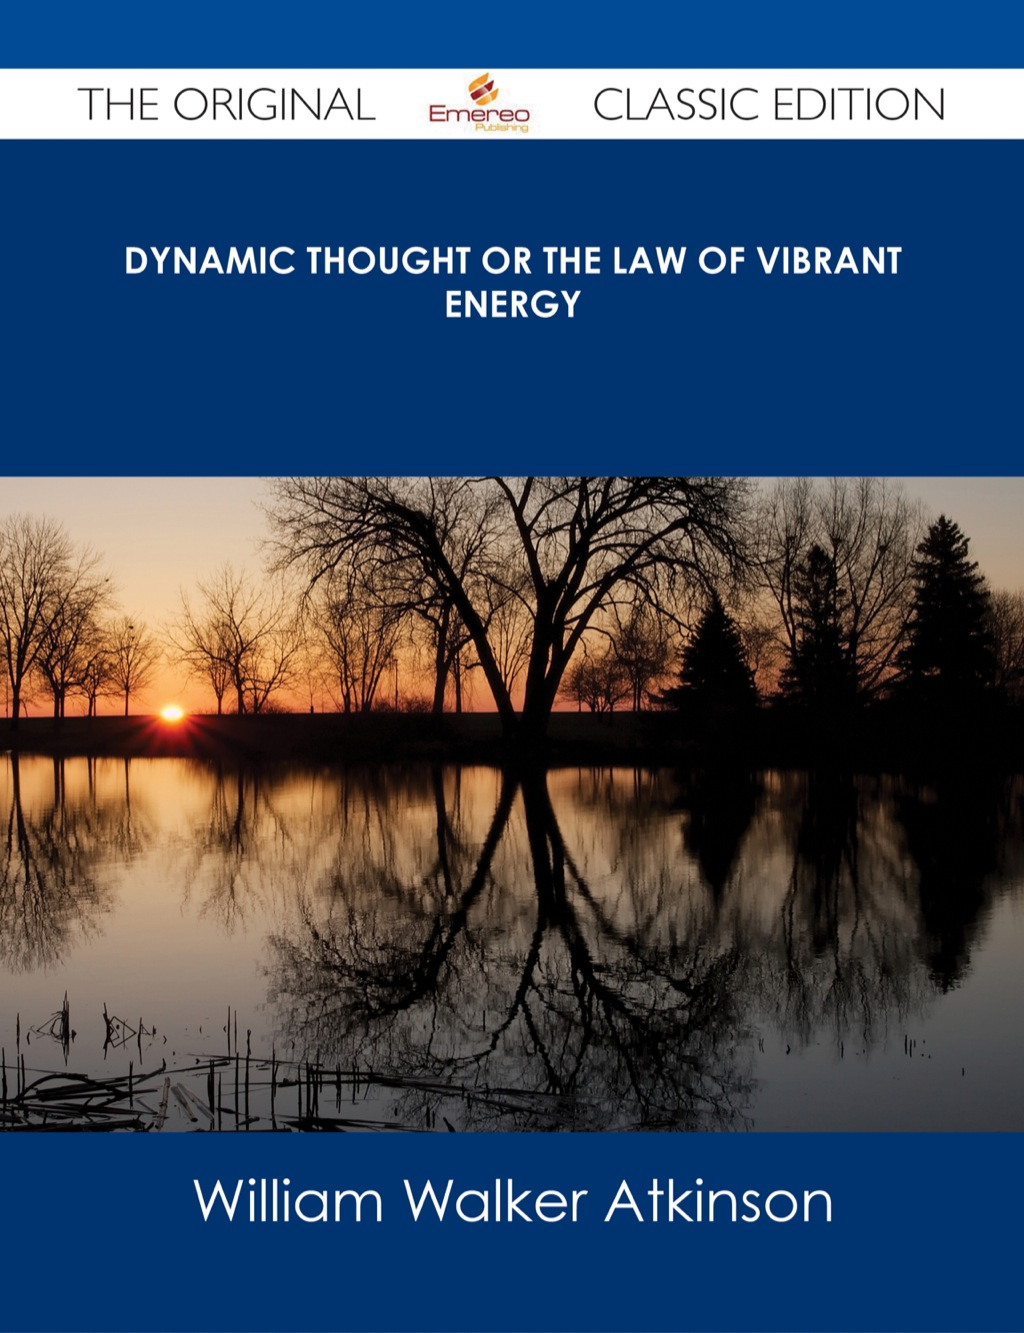 Dynamic Thought or The Law of Vibrant Energy - The Original Classic Edition (ebook) eBooks